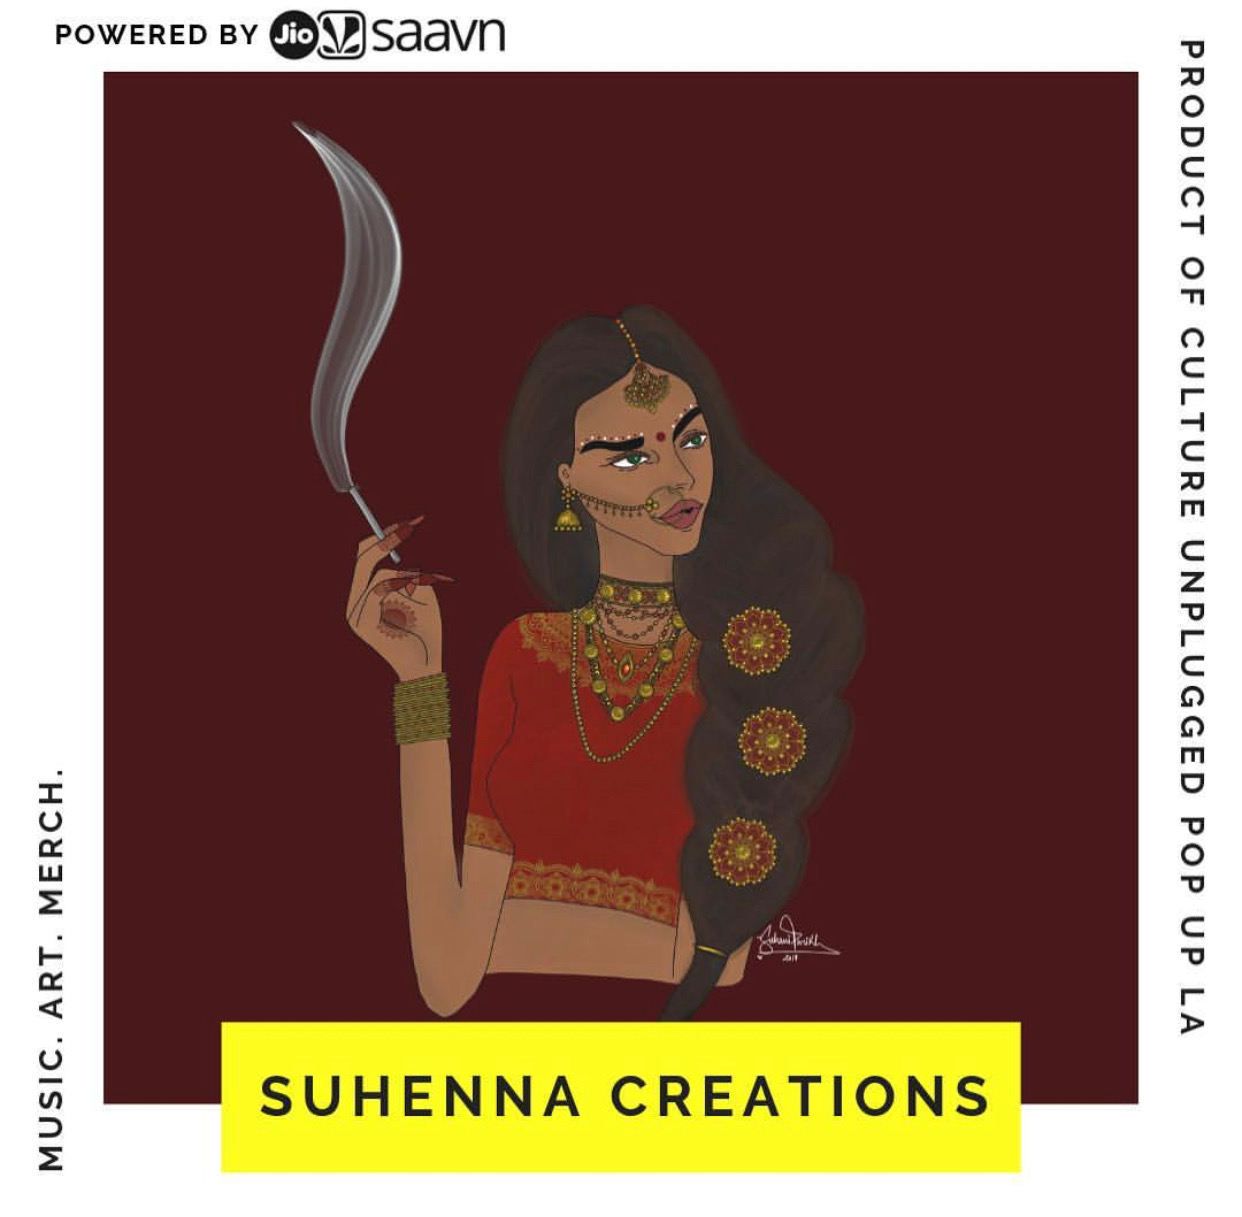 SUHENNA CREATIONS - Suhenna brings a modern twist to traditional South Asian Art in every way we can. From our mendhi inspired art pieces to our pop art style drawings, Suhenna is always inspired and influenced by the culture.